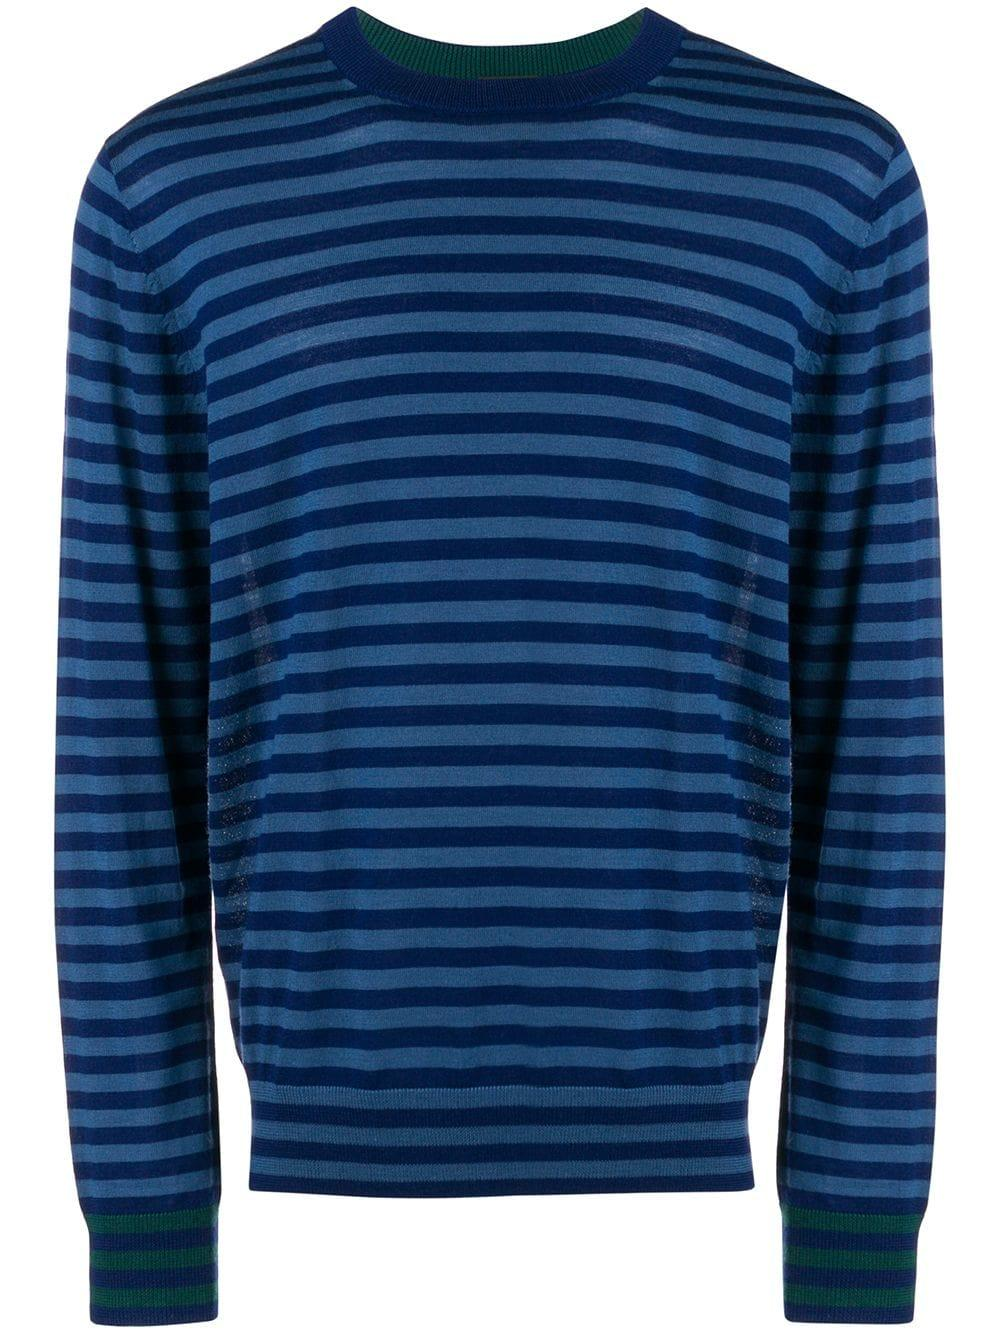 18656bd9771f Ps By Paul Smith Striped Crew Neck Jumper - Blue   ModeSens